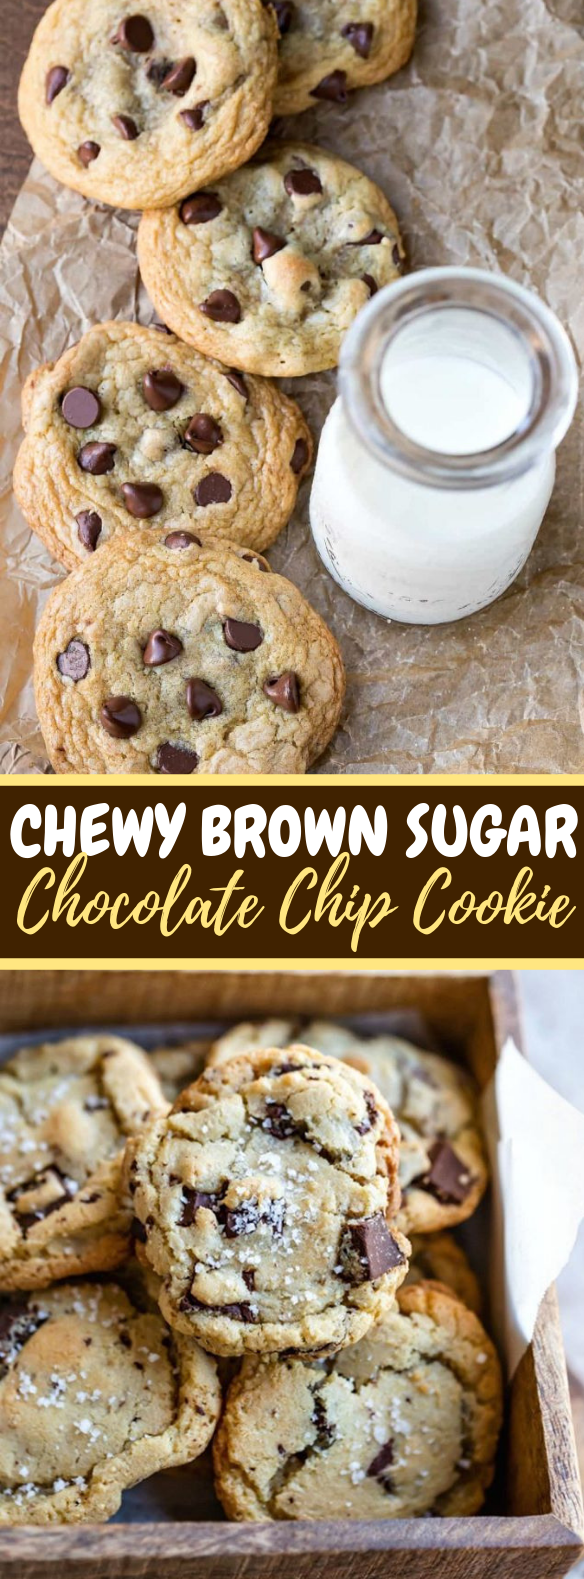 Chewy Brown Sugar Chocolate Chip Cookie Recipe #desserts #cookies